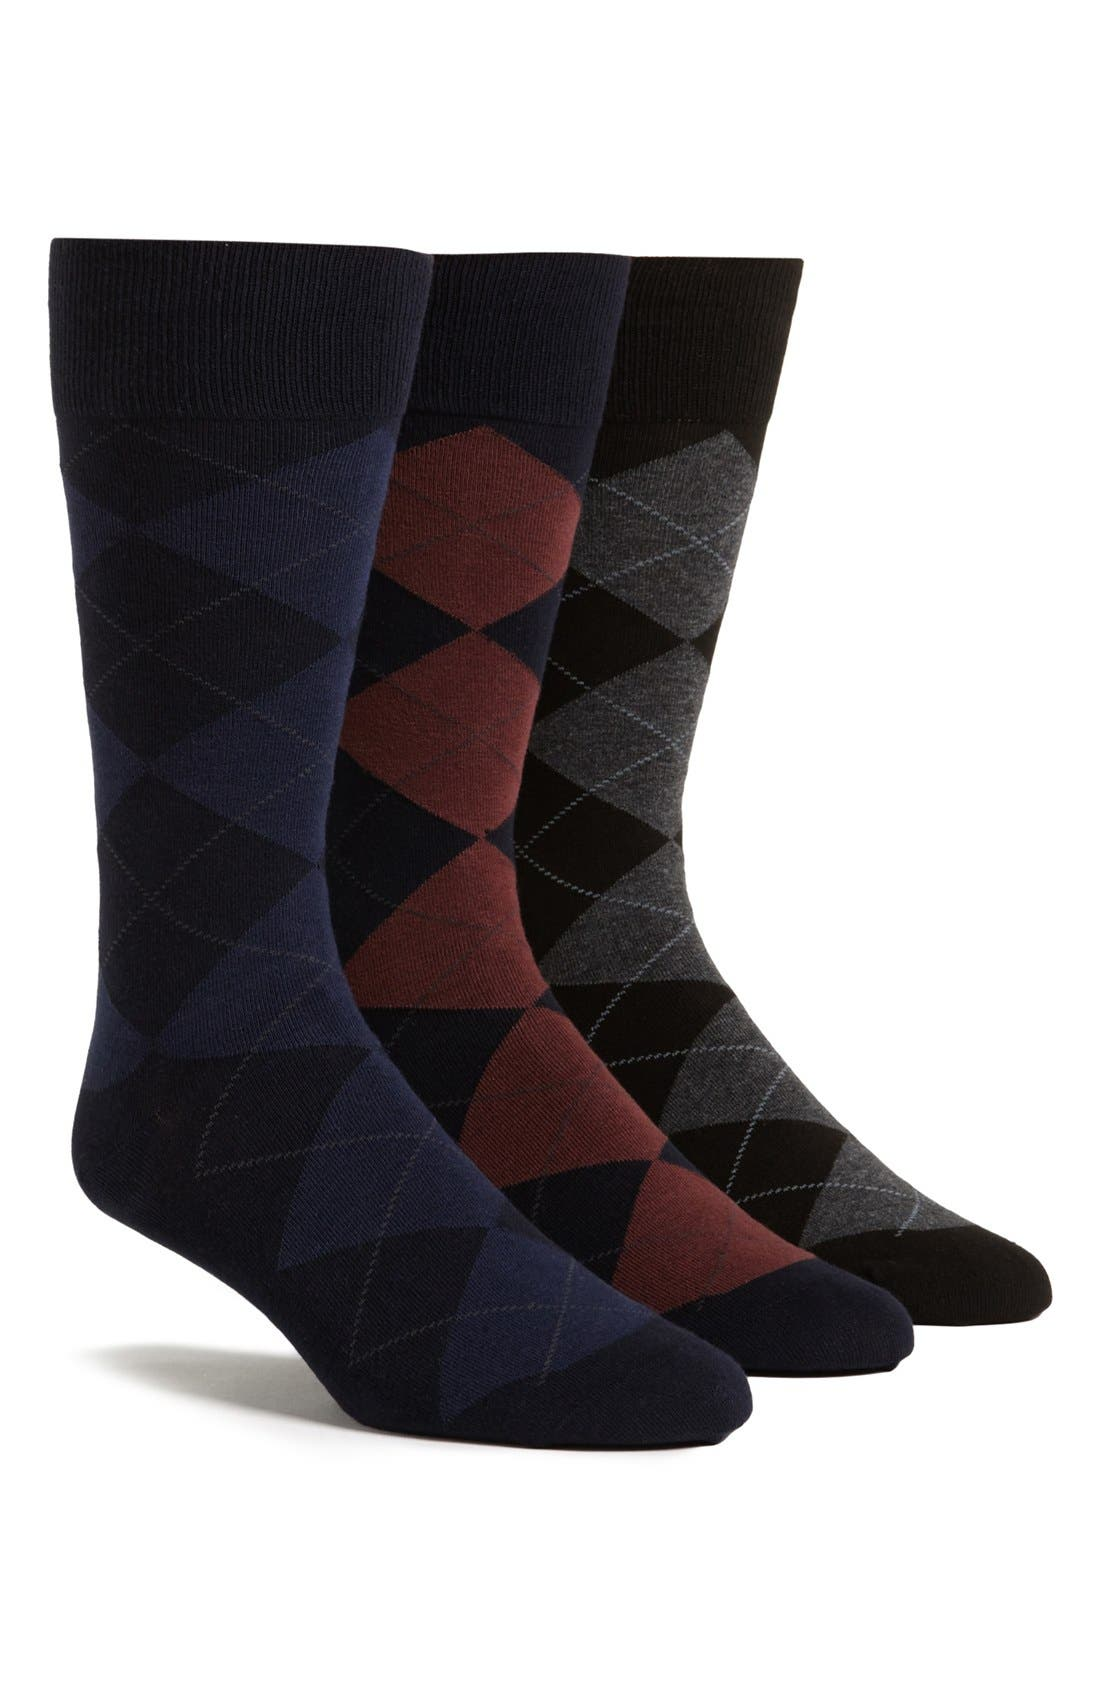 Main Image - Polo Ralph Lauren 3-Pack Argyle Socks